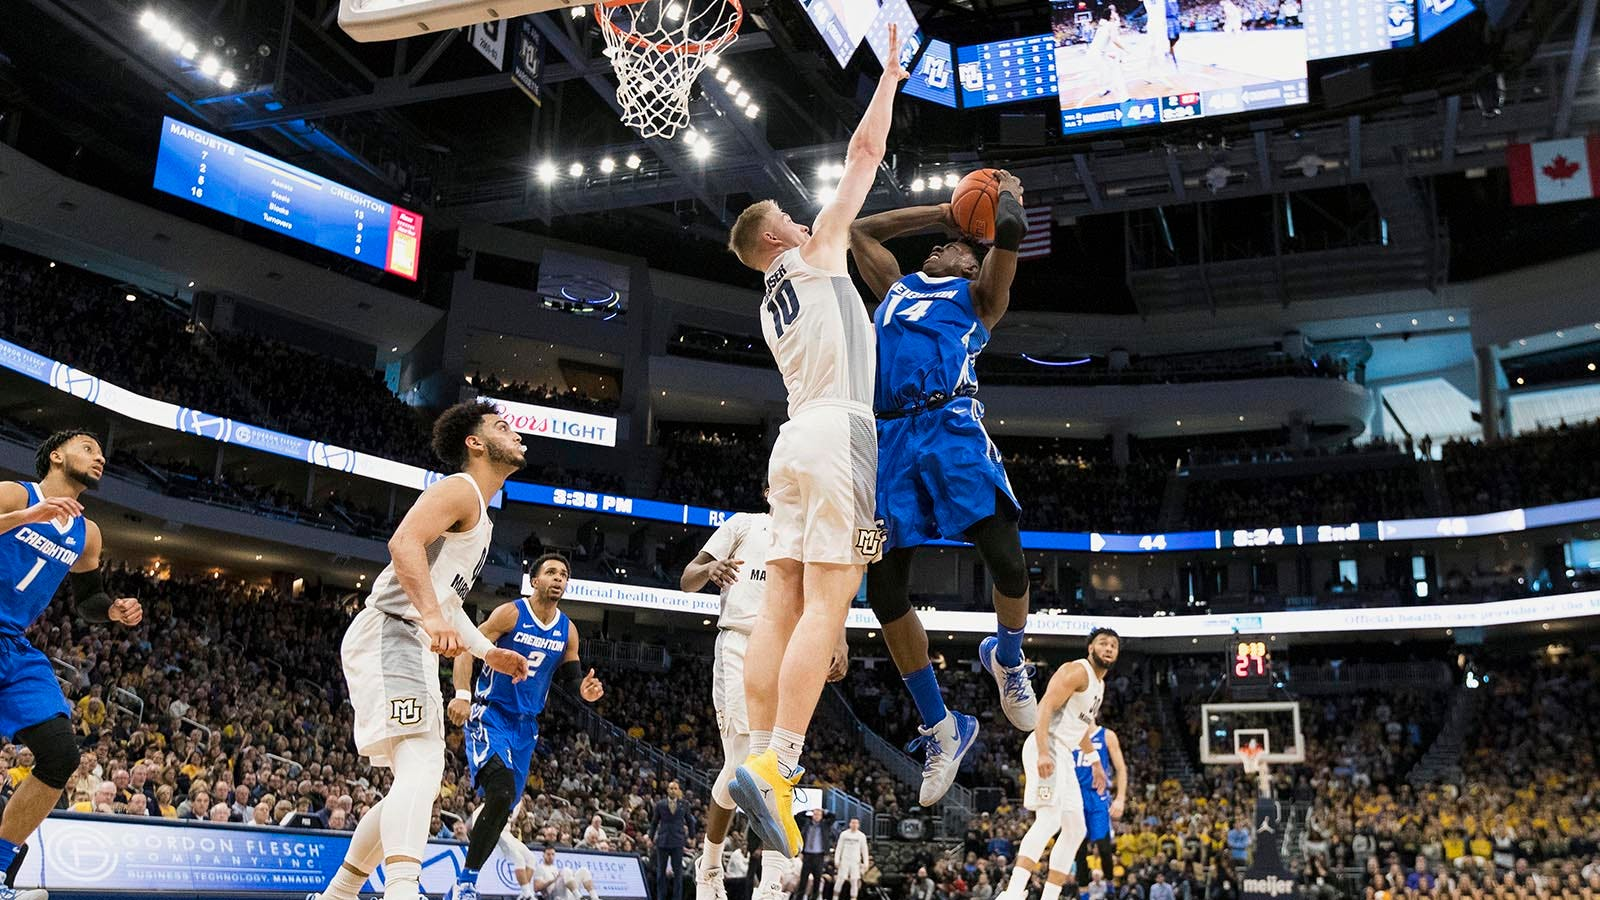 Marquette falls to No  16, Wisconsin to No  21 in latest AP poll